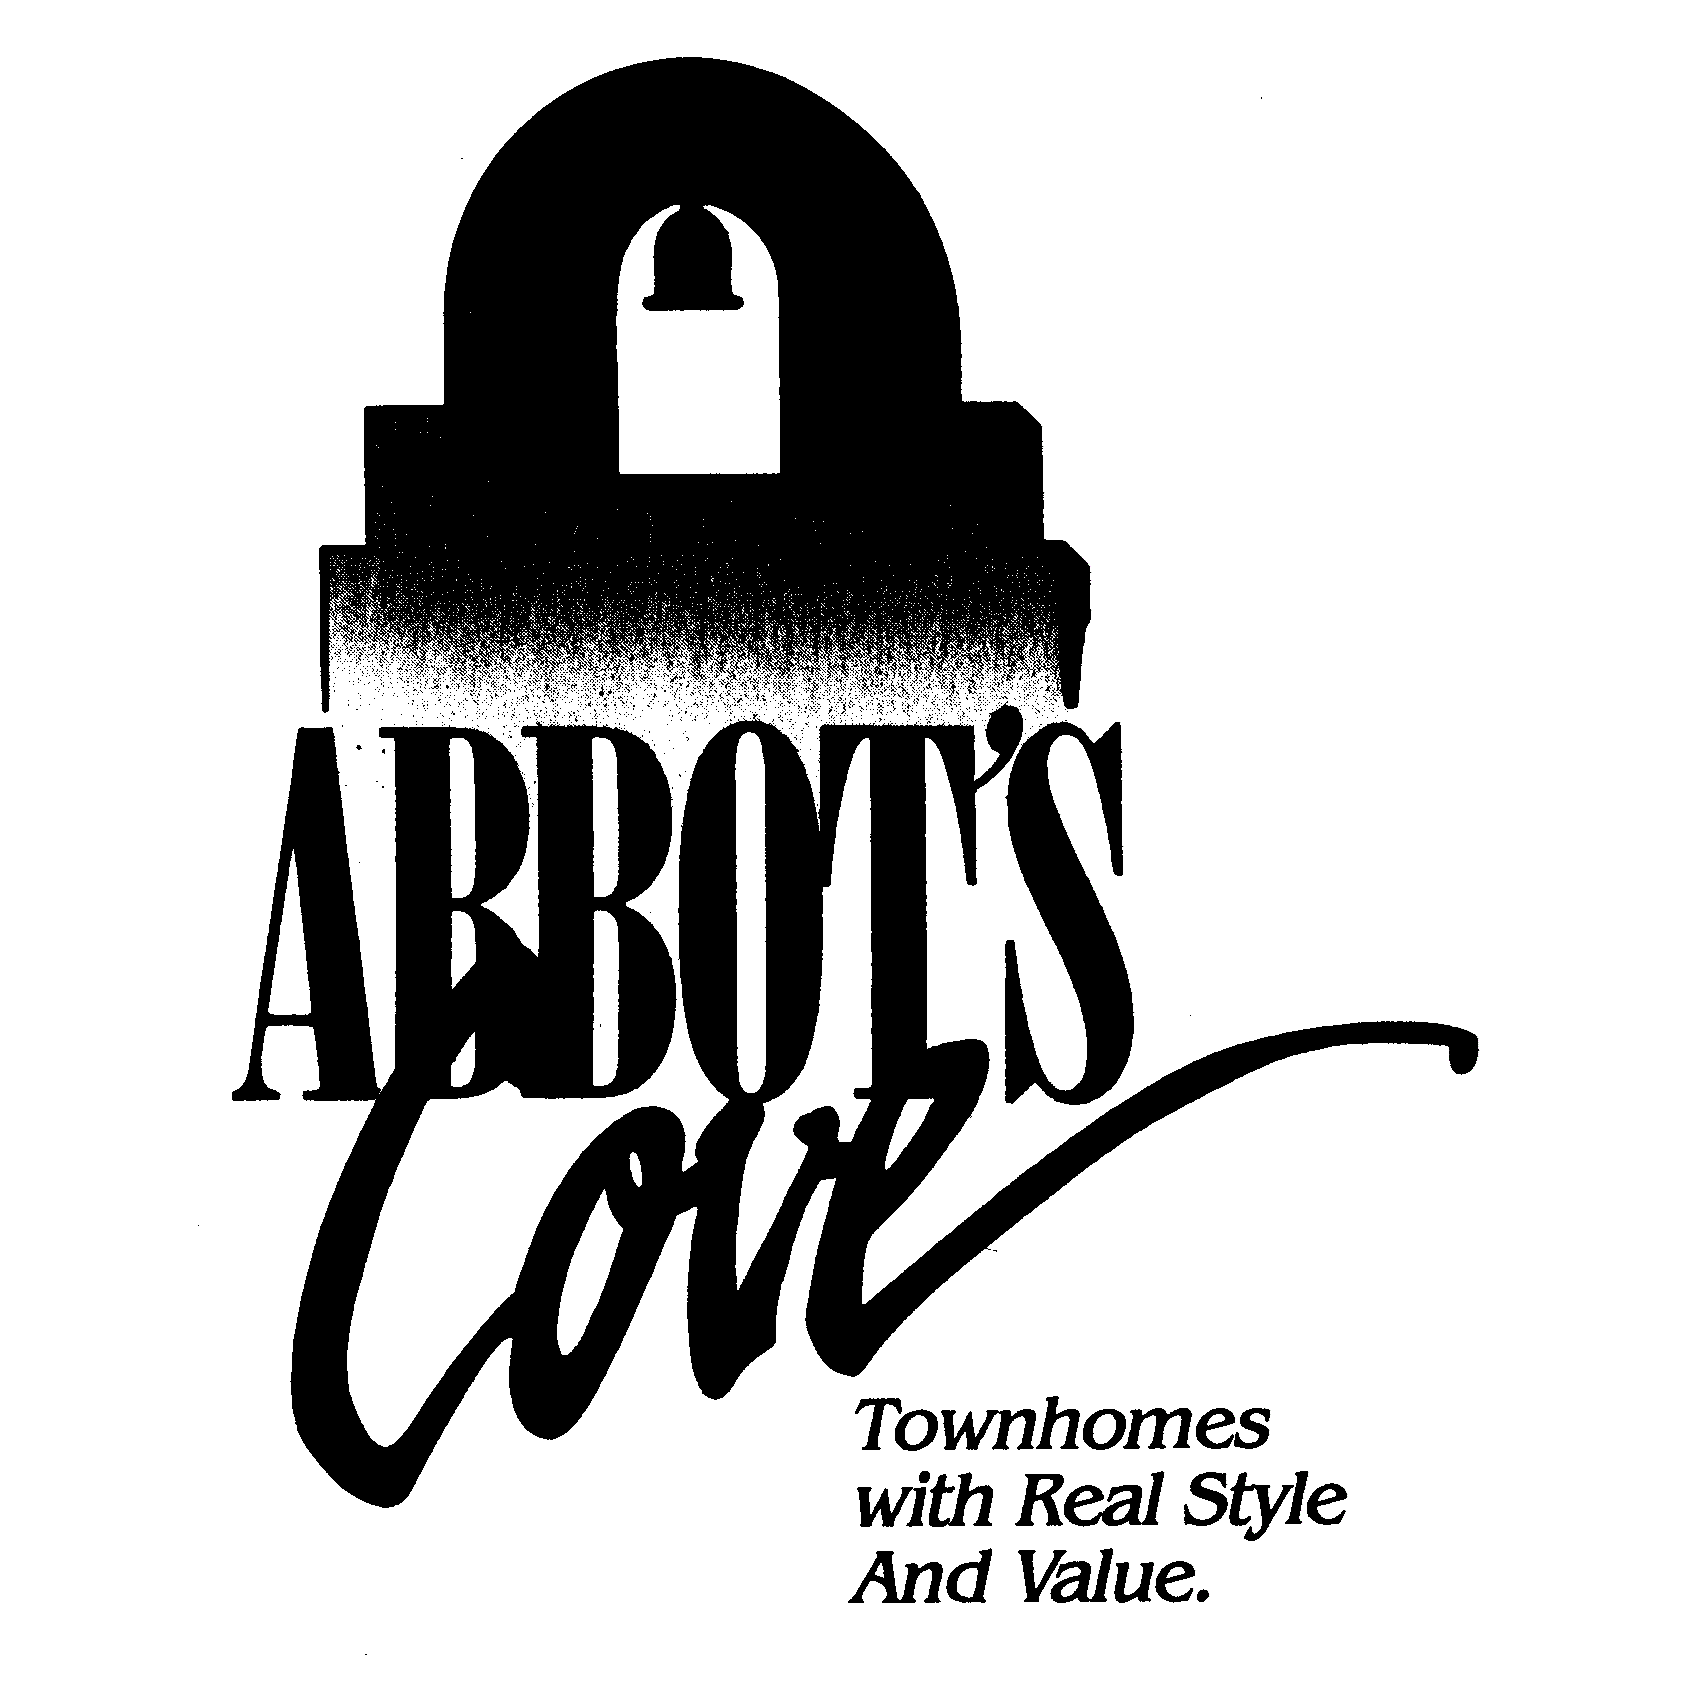 Abbot's Cove Apartments